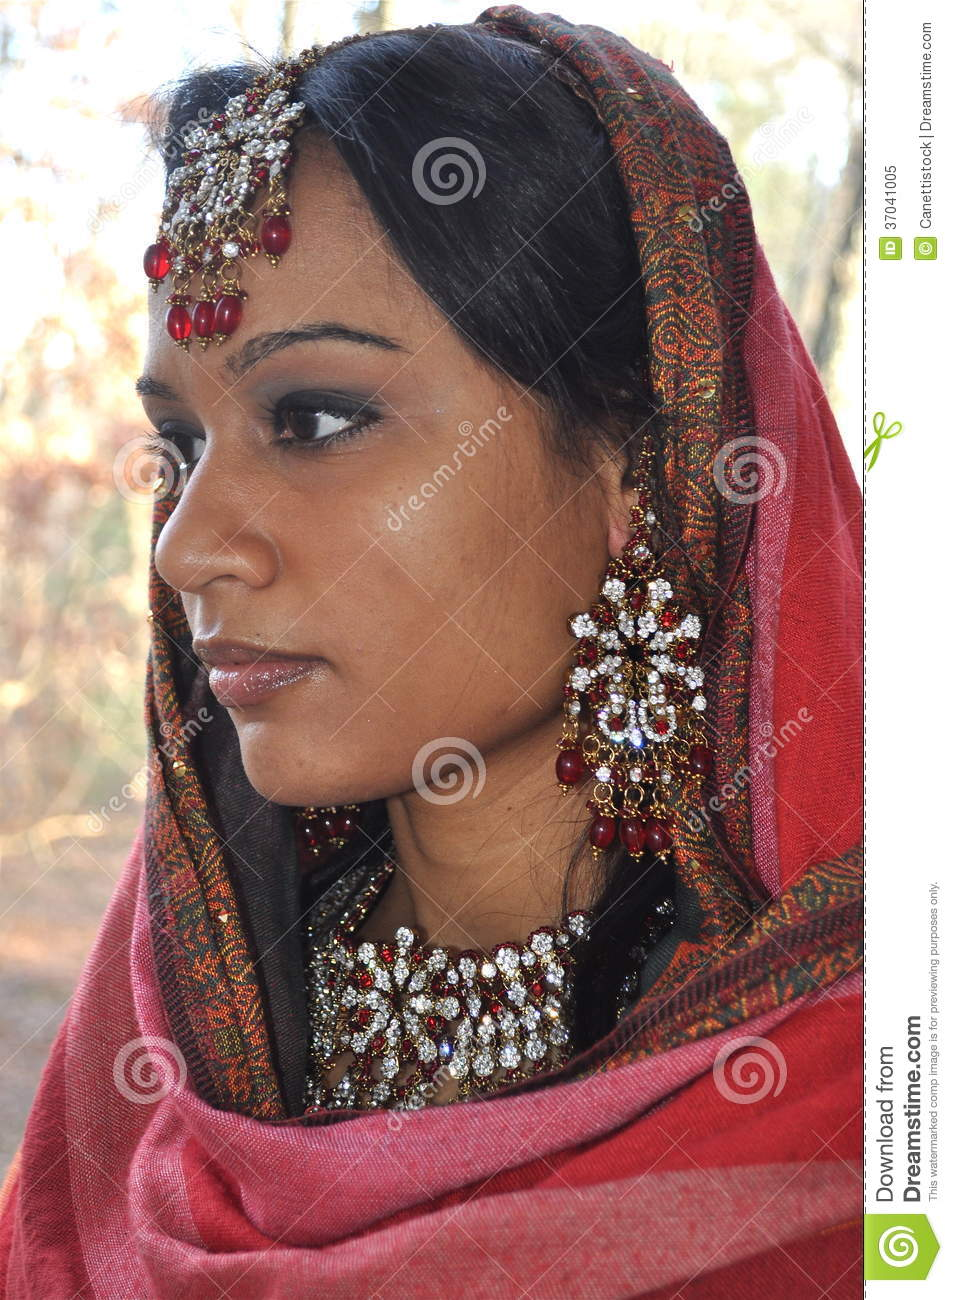 la palma hindu single women The indian community of spain form one of the smaller populations like madrid, barcelona, palma de mallorca the largest hindu community in spain is in.